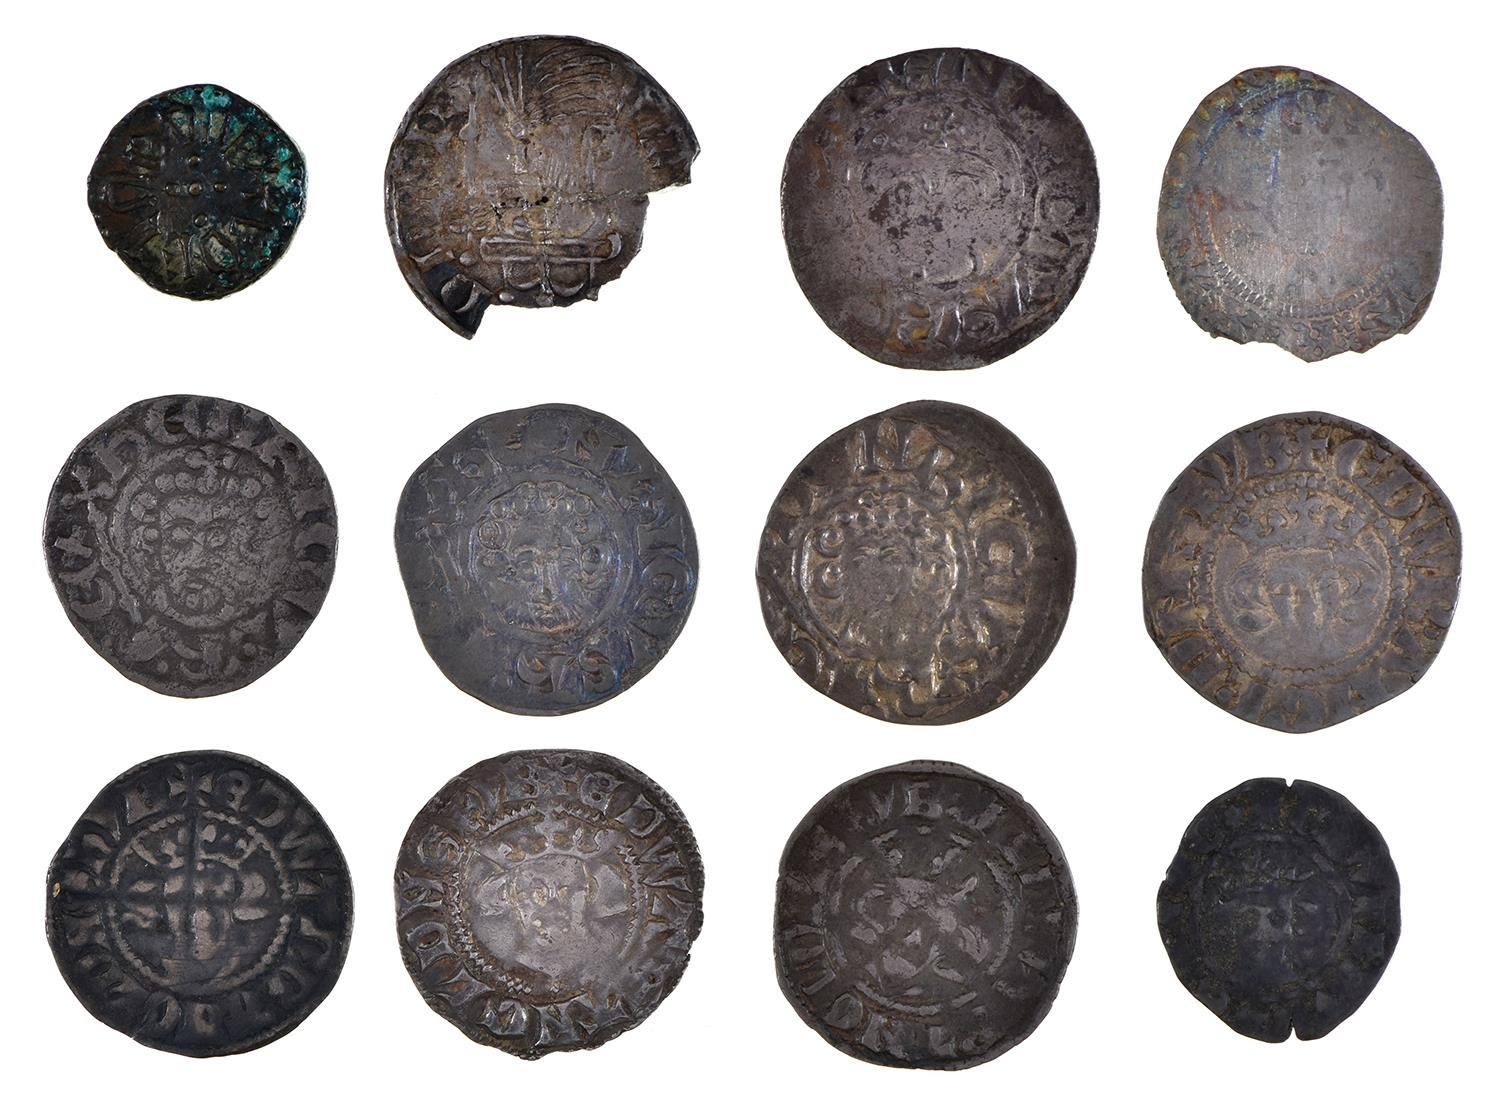 England, Anglo-Saxons, Aethelred II, Ae Sceat, MONNE, (ex-Seaby 85/- 1966), some verdigris, very